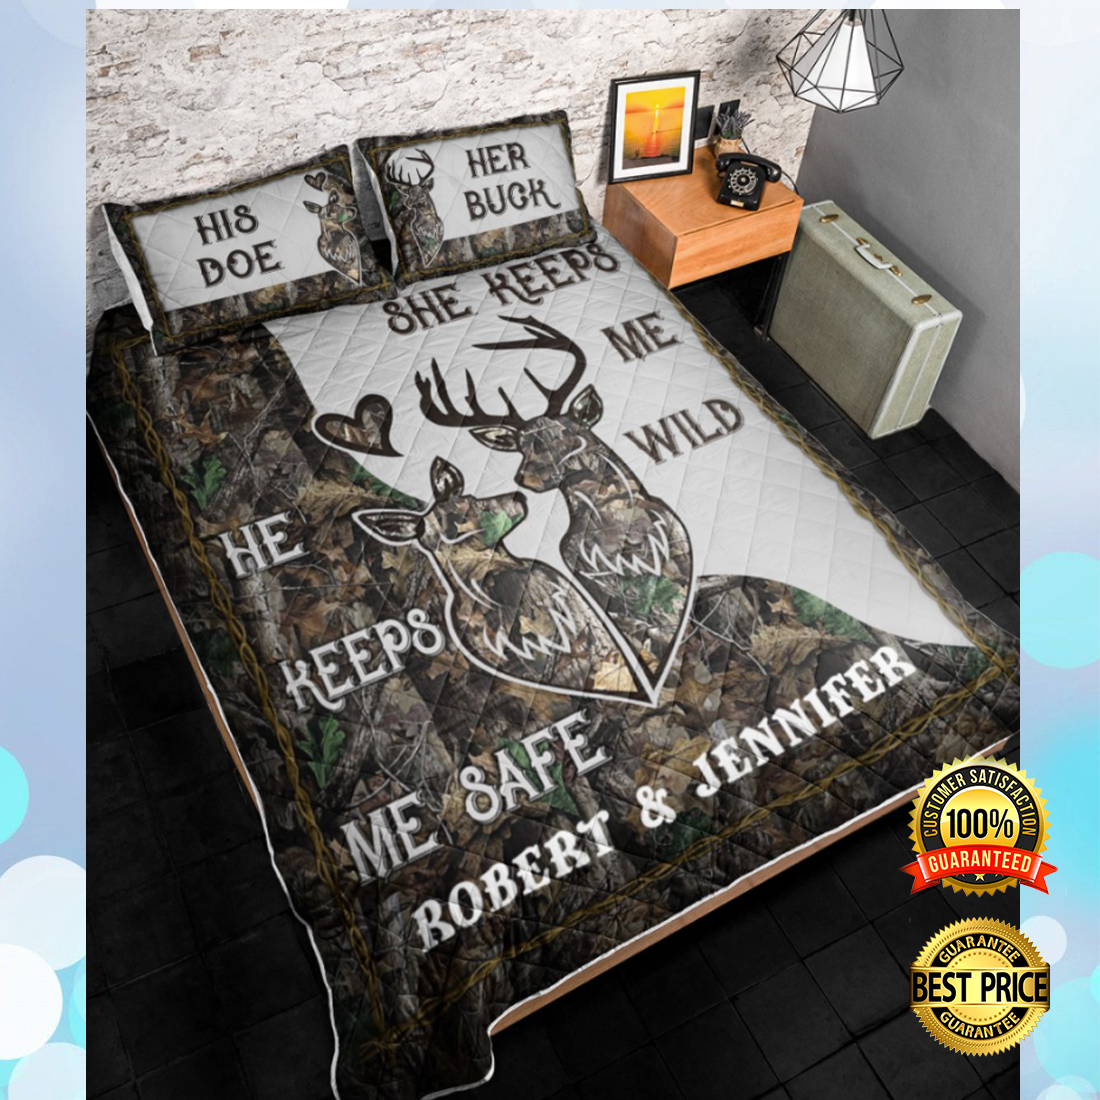 PERSONALIZED HE KEEPS ME SAFE SHE KEEPS ME WILD BEDDING SET 6